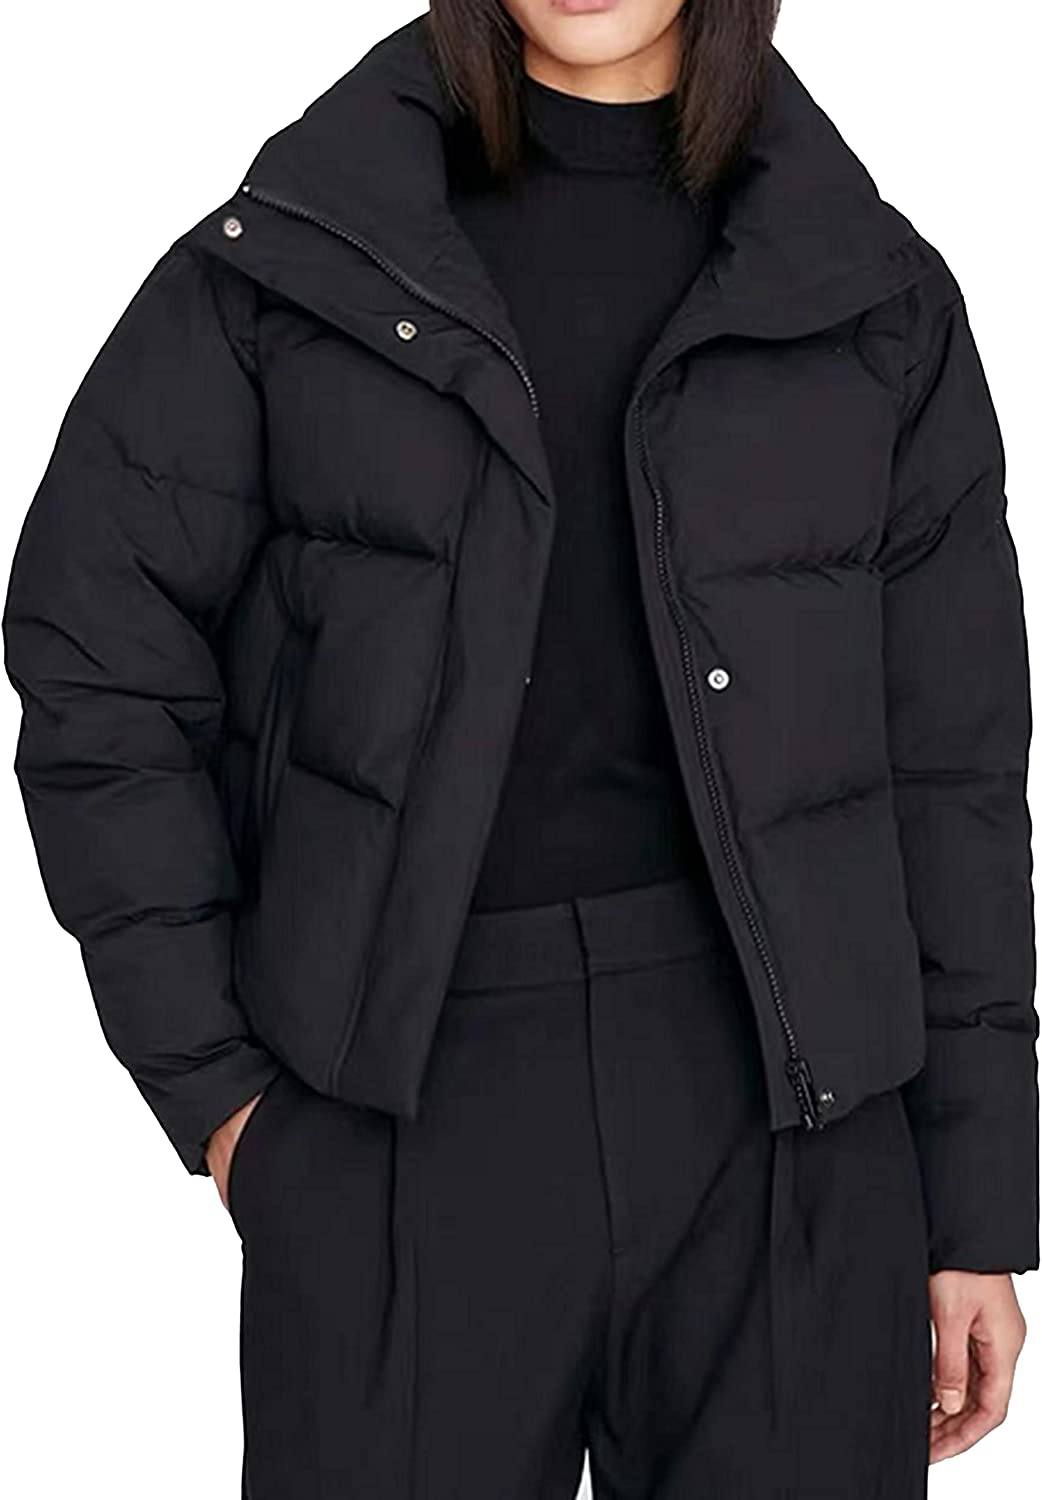 UANEO Womens Casual Zip Up Button Down Stand Collar Loose Short Winter Coat Puffer Jacket